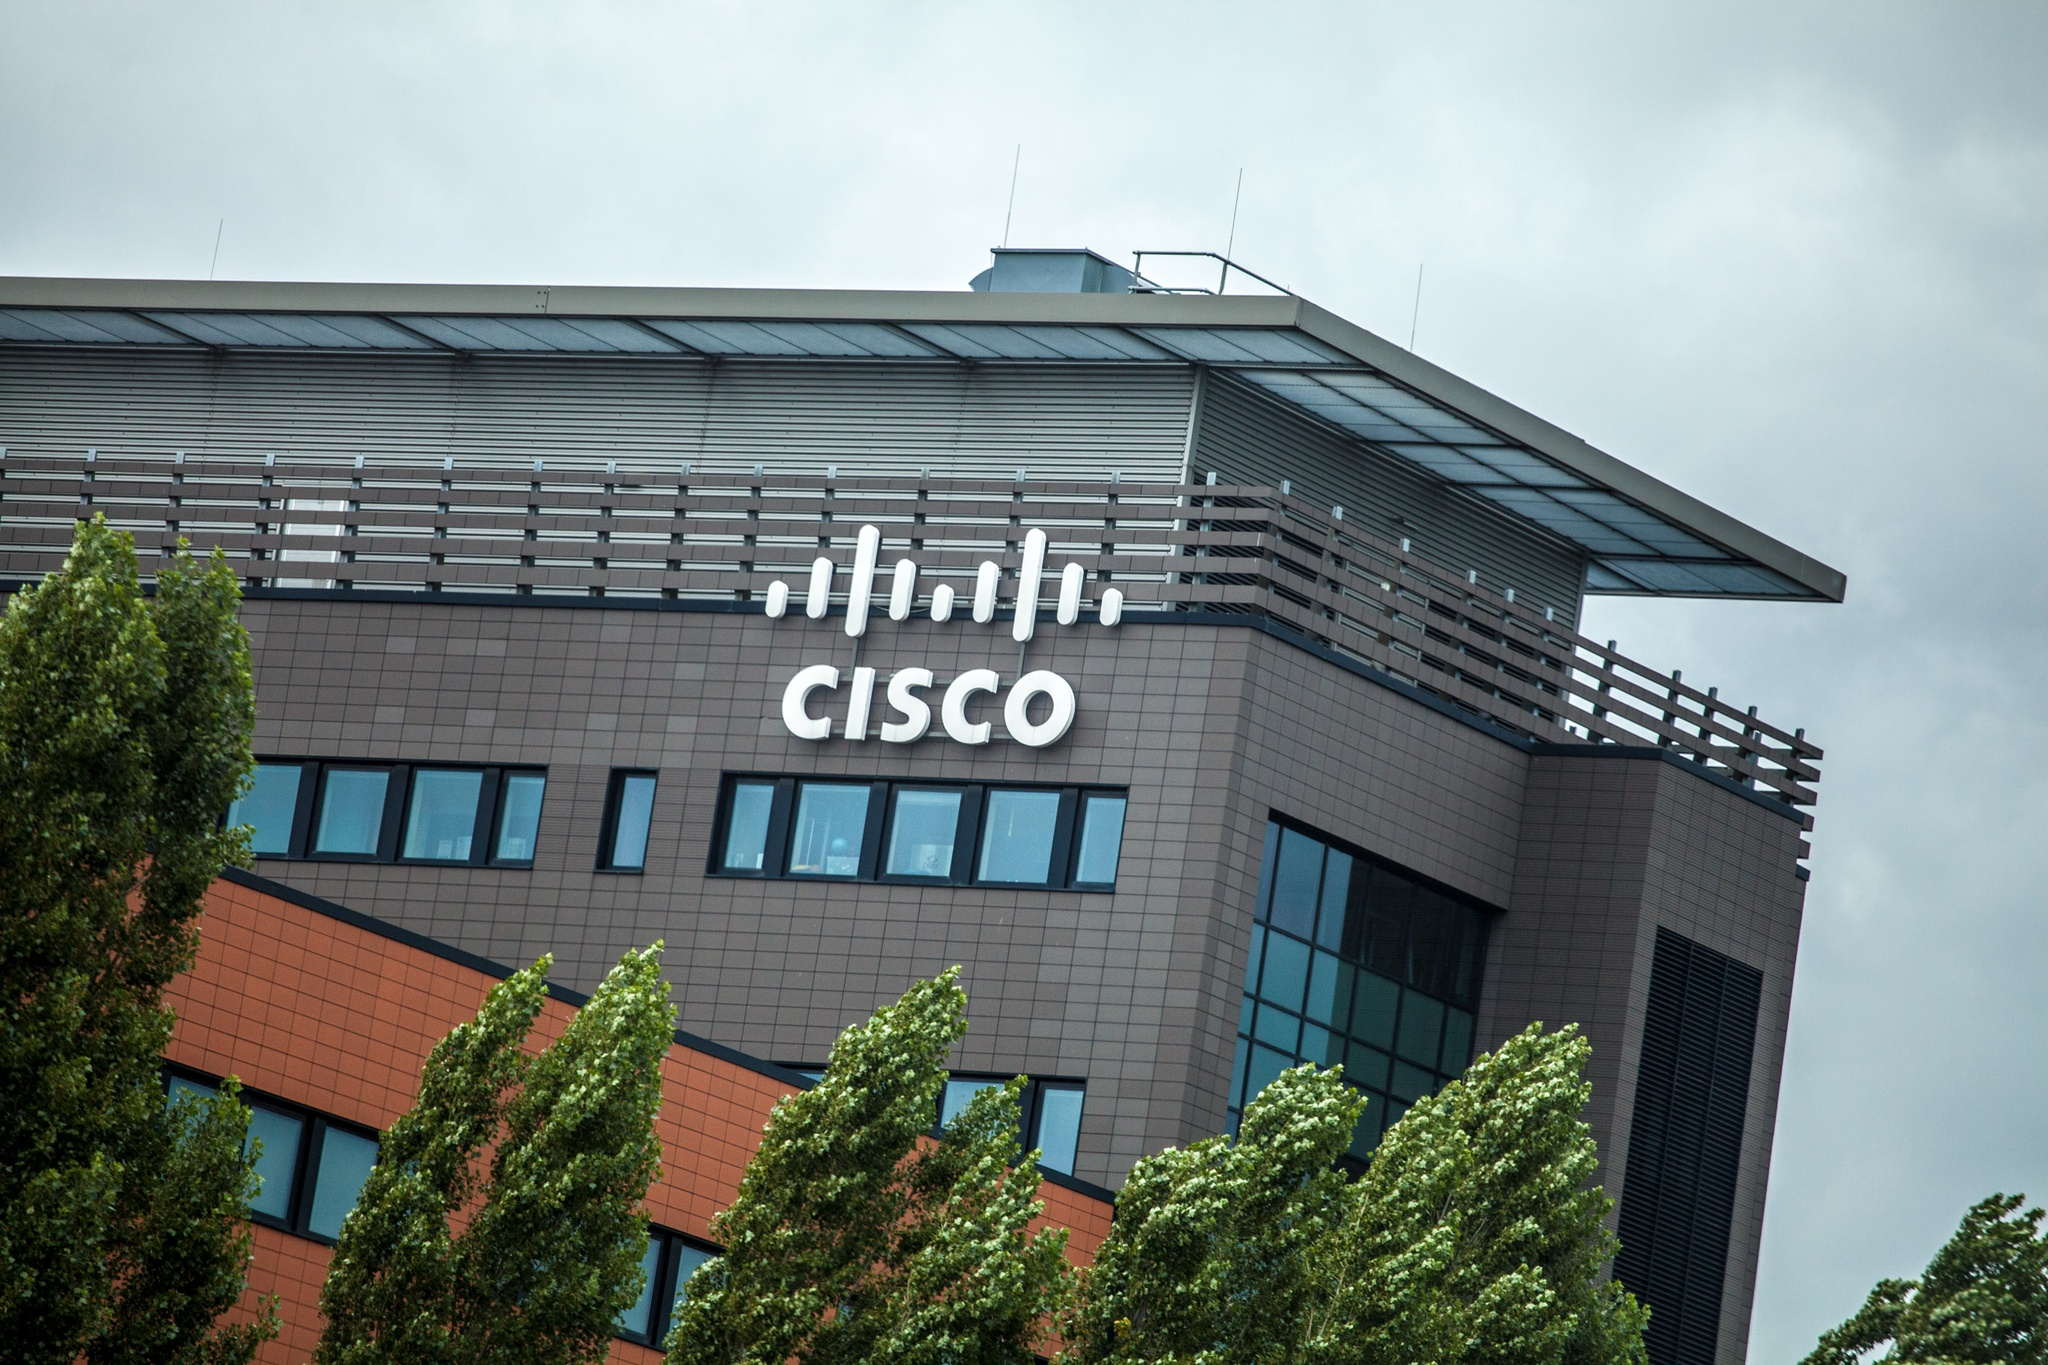 Cisco digitizes its candidate experience to attract talent